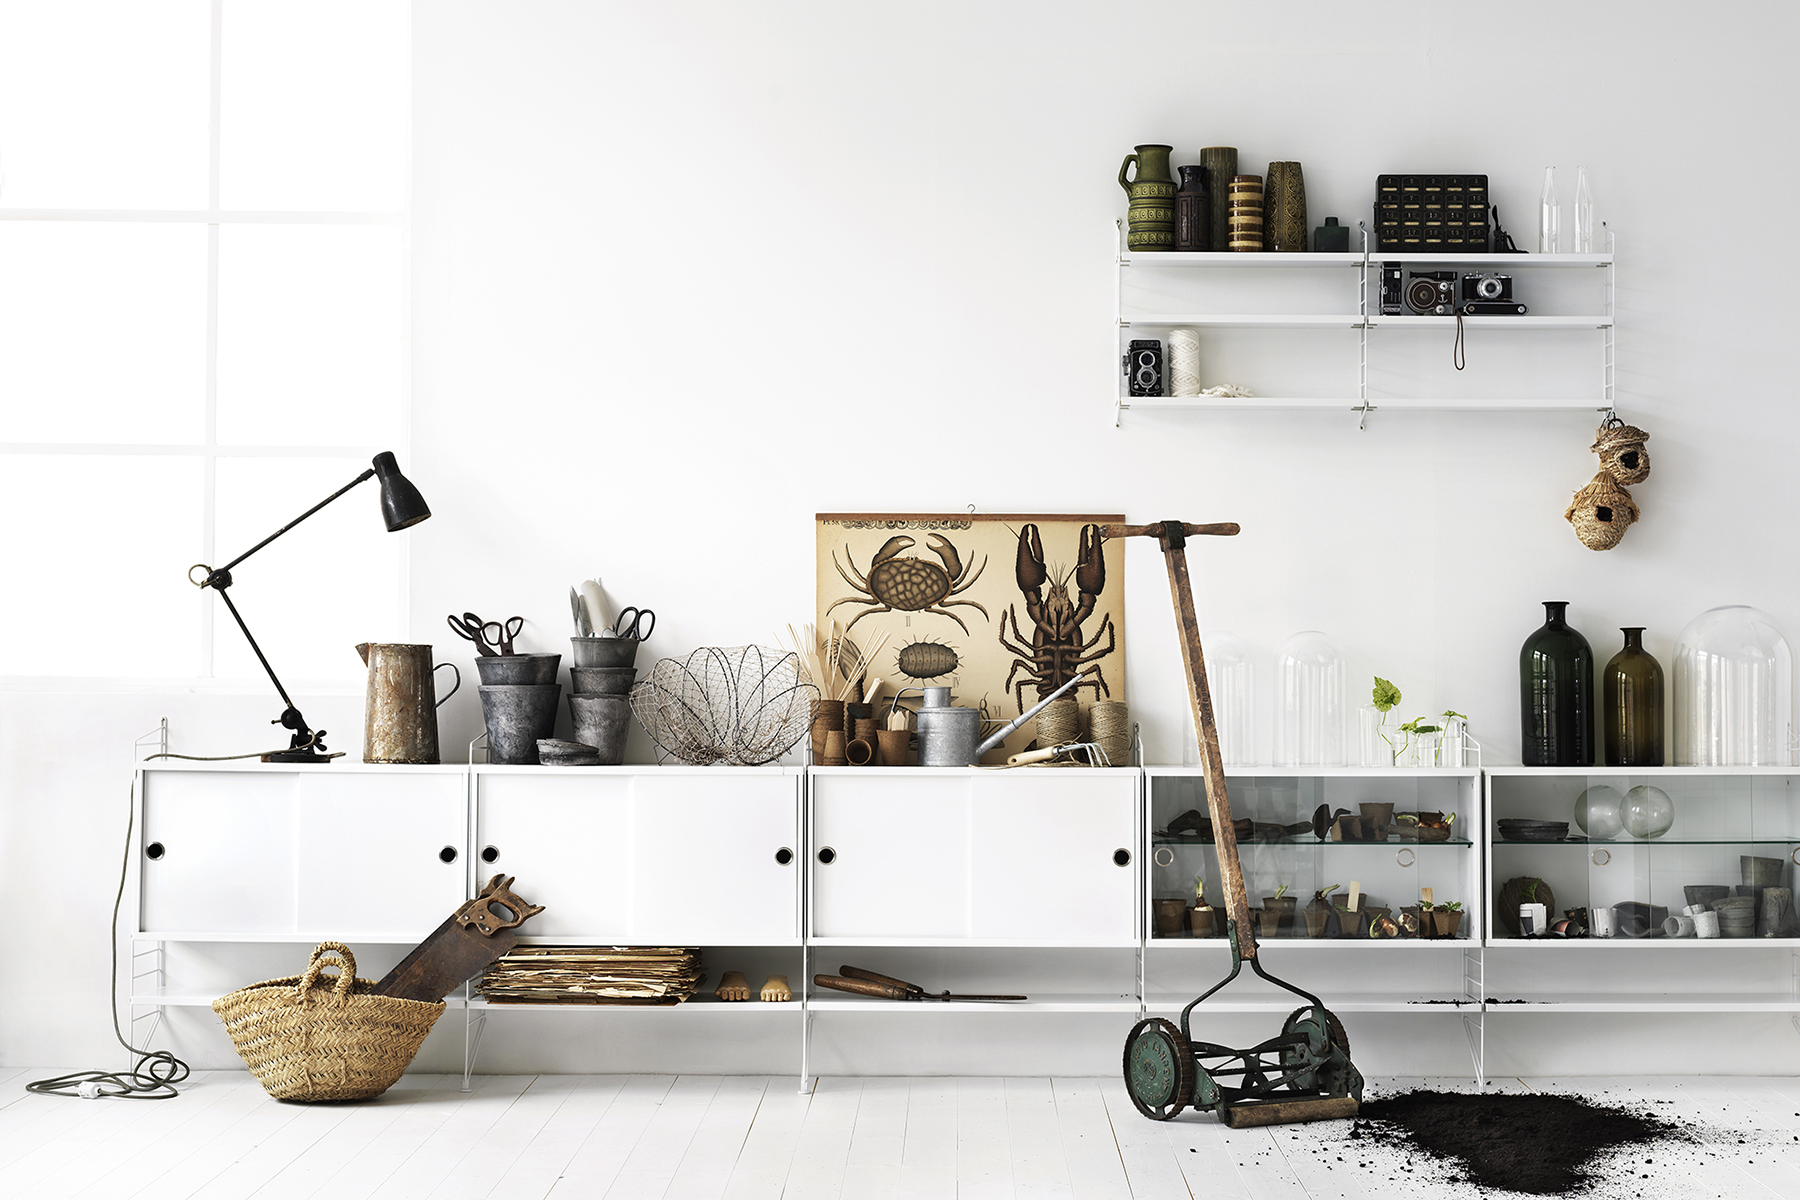 Scandinavian interiors with natural materials - Top 10 tips for adding Scandinavian style to your home | Happy Grey Lucky